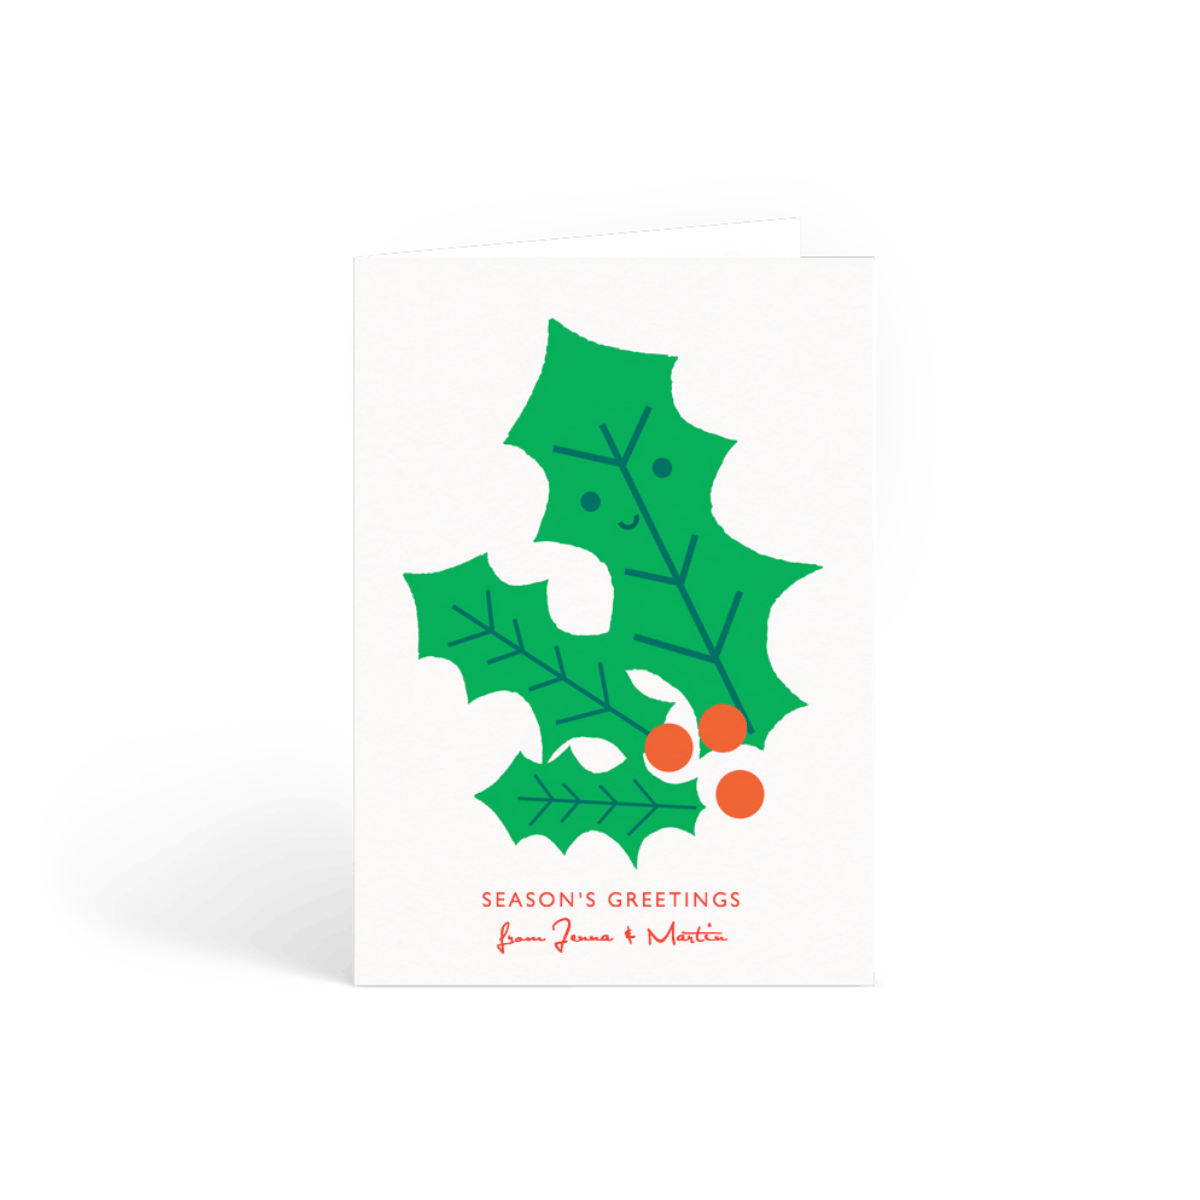 Https%3a%2f%2fwww.papier.com%2fproduct image%2f14303%2f2%2fhappy holly 3821 front 1568233035.png?ixlib=rb 1.1